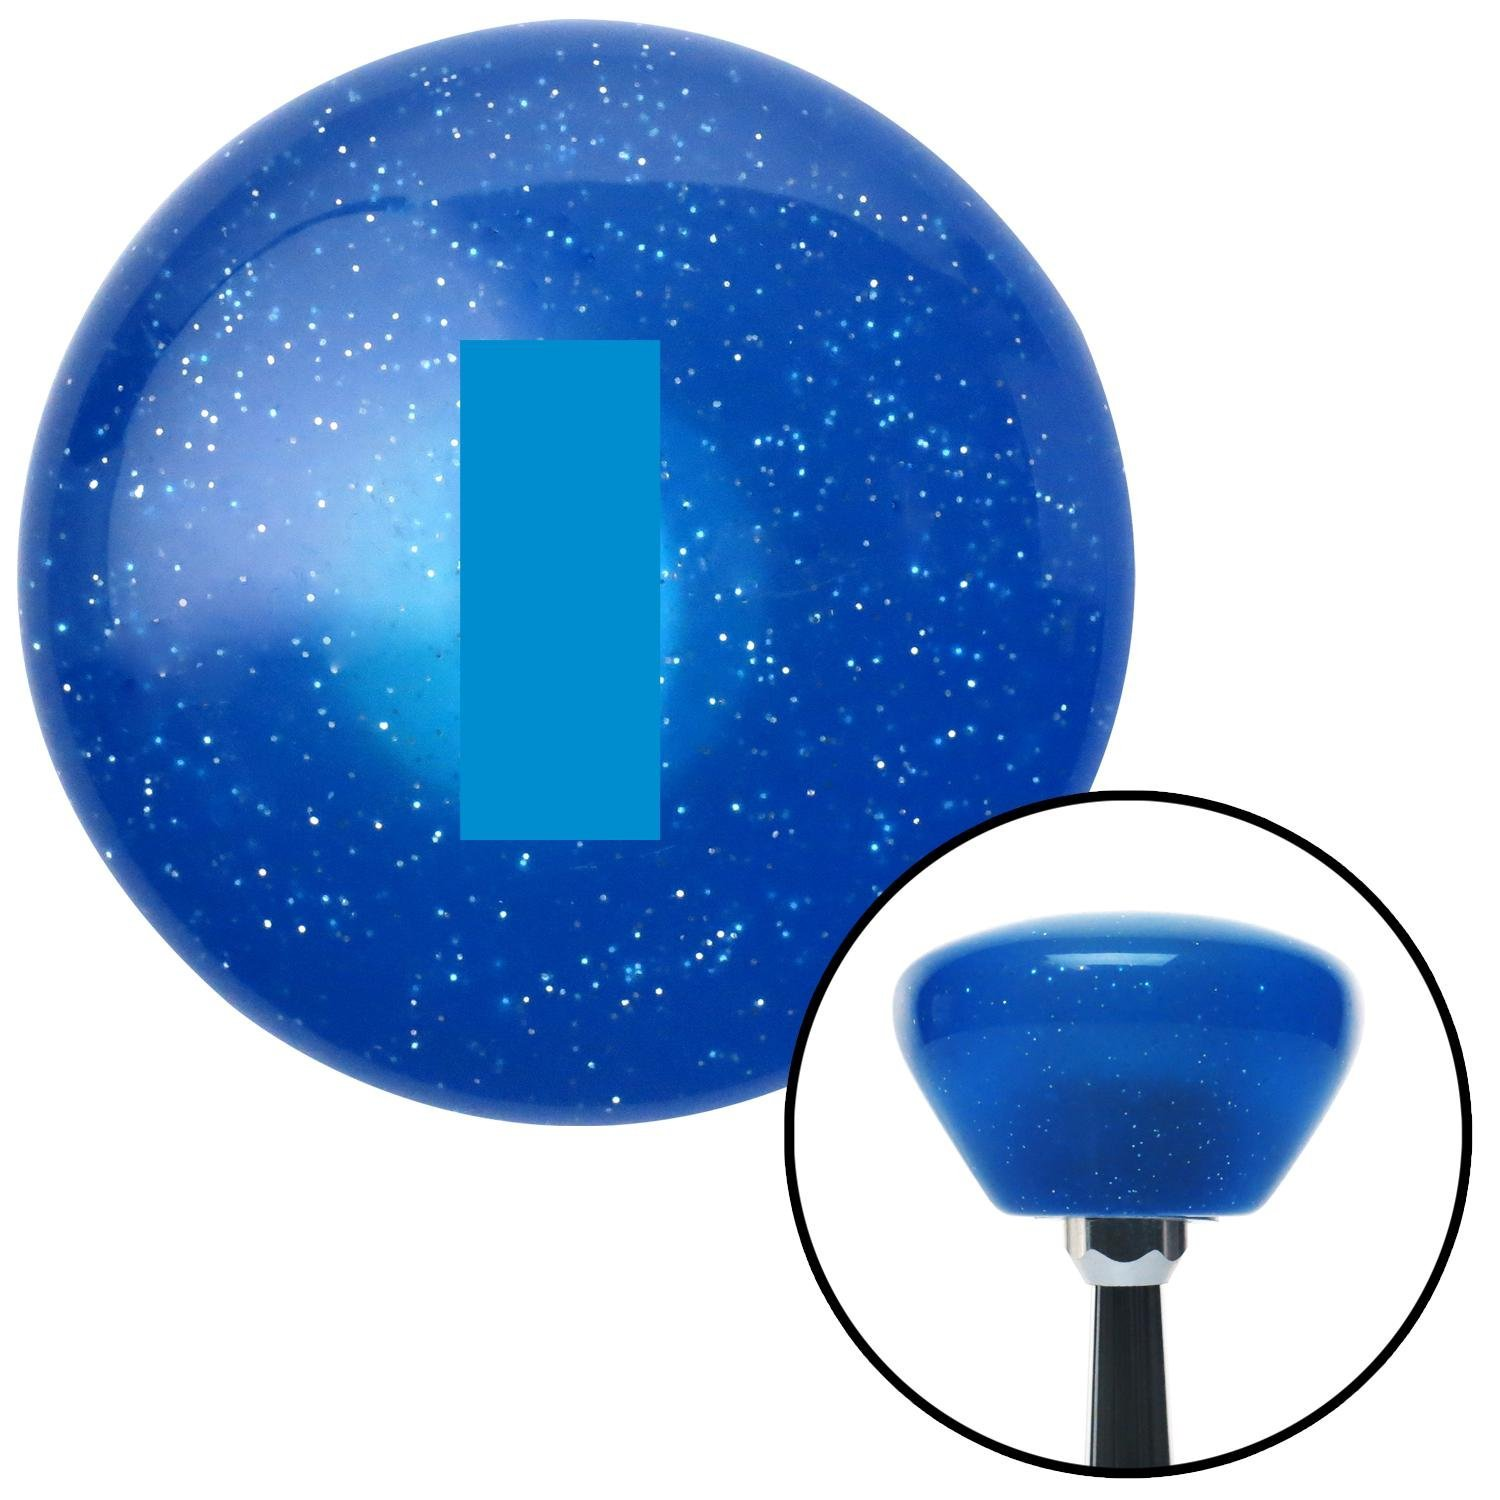 Blue First Lieutenant /& Second Lieutenant American Shifter 190318 Blue Retro Metal Flake Shift Knob with M16 x 1.5 Insert